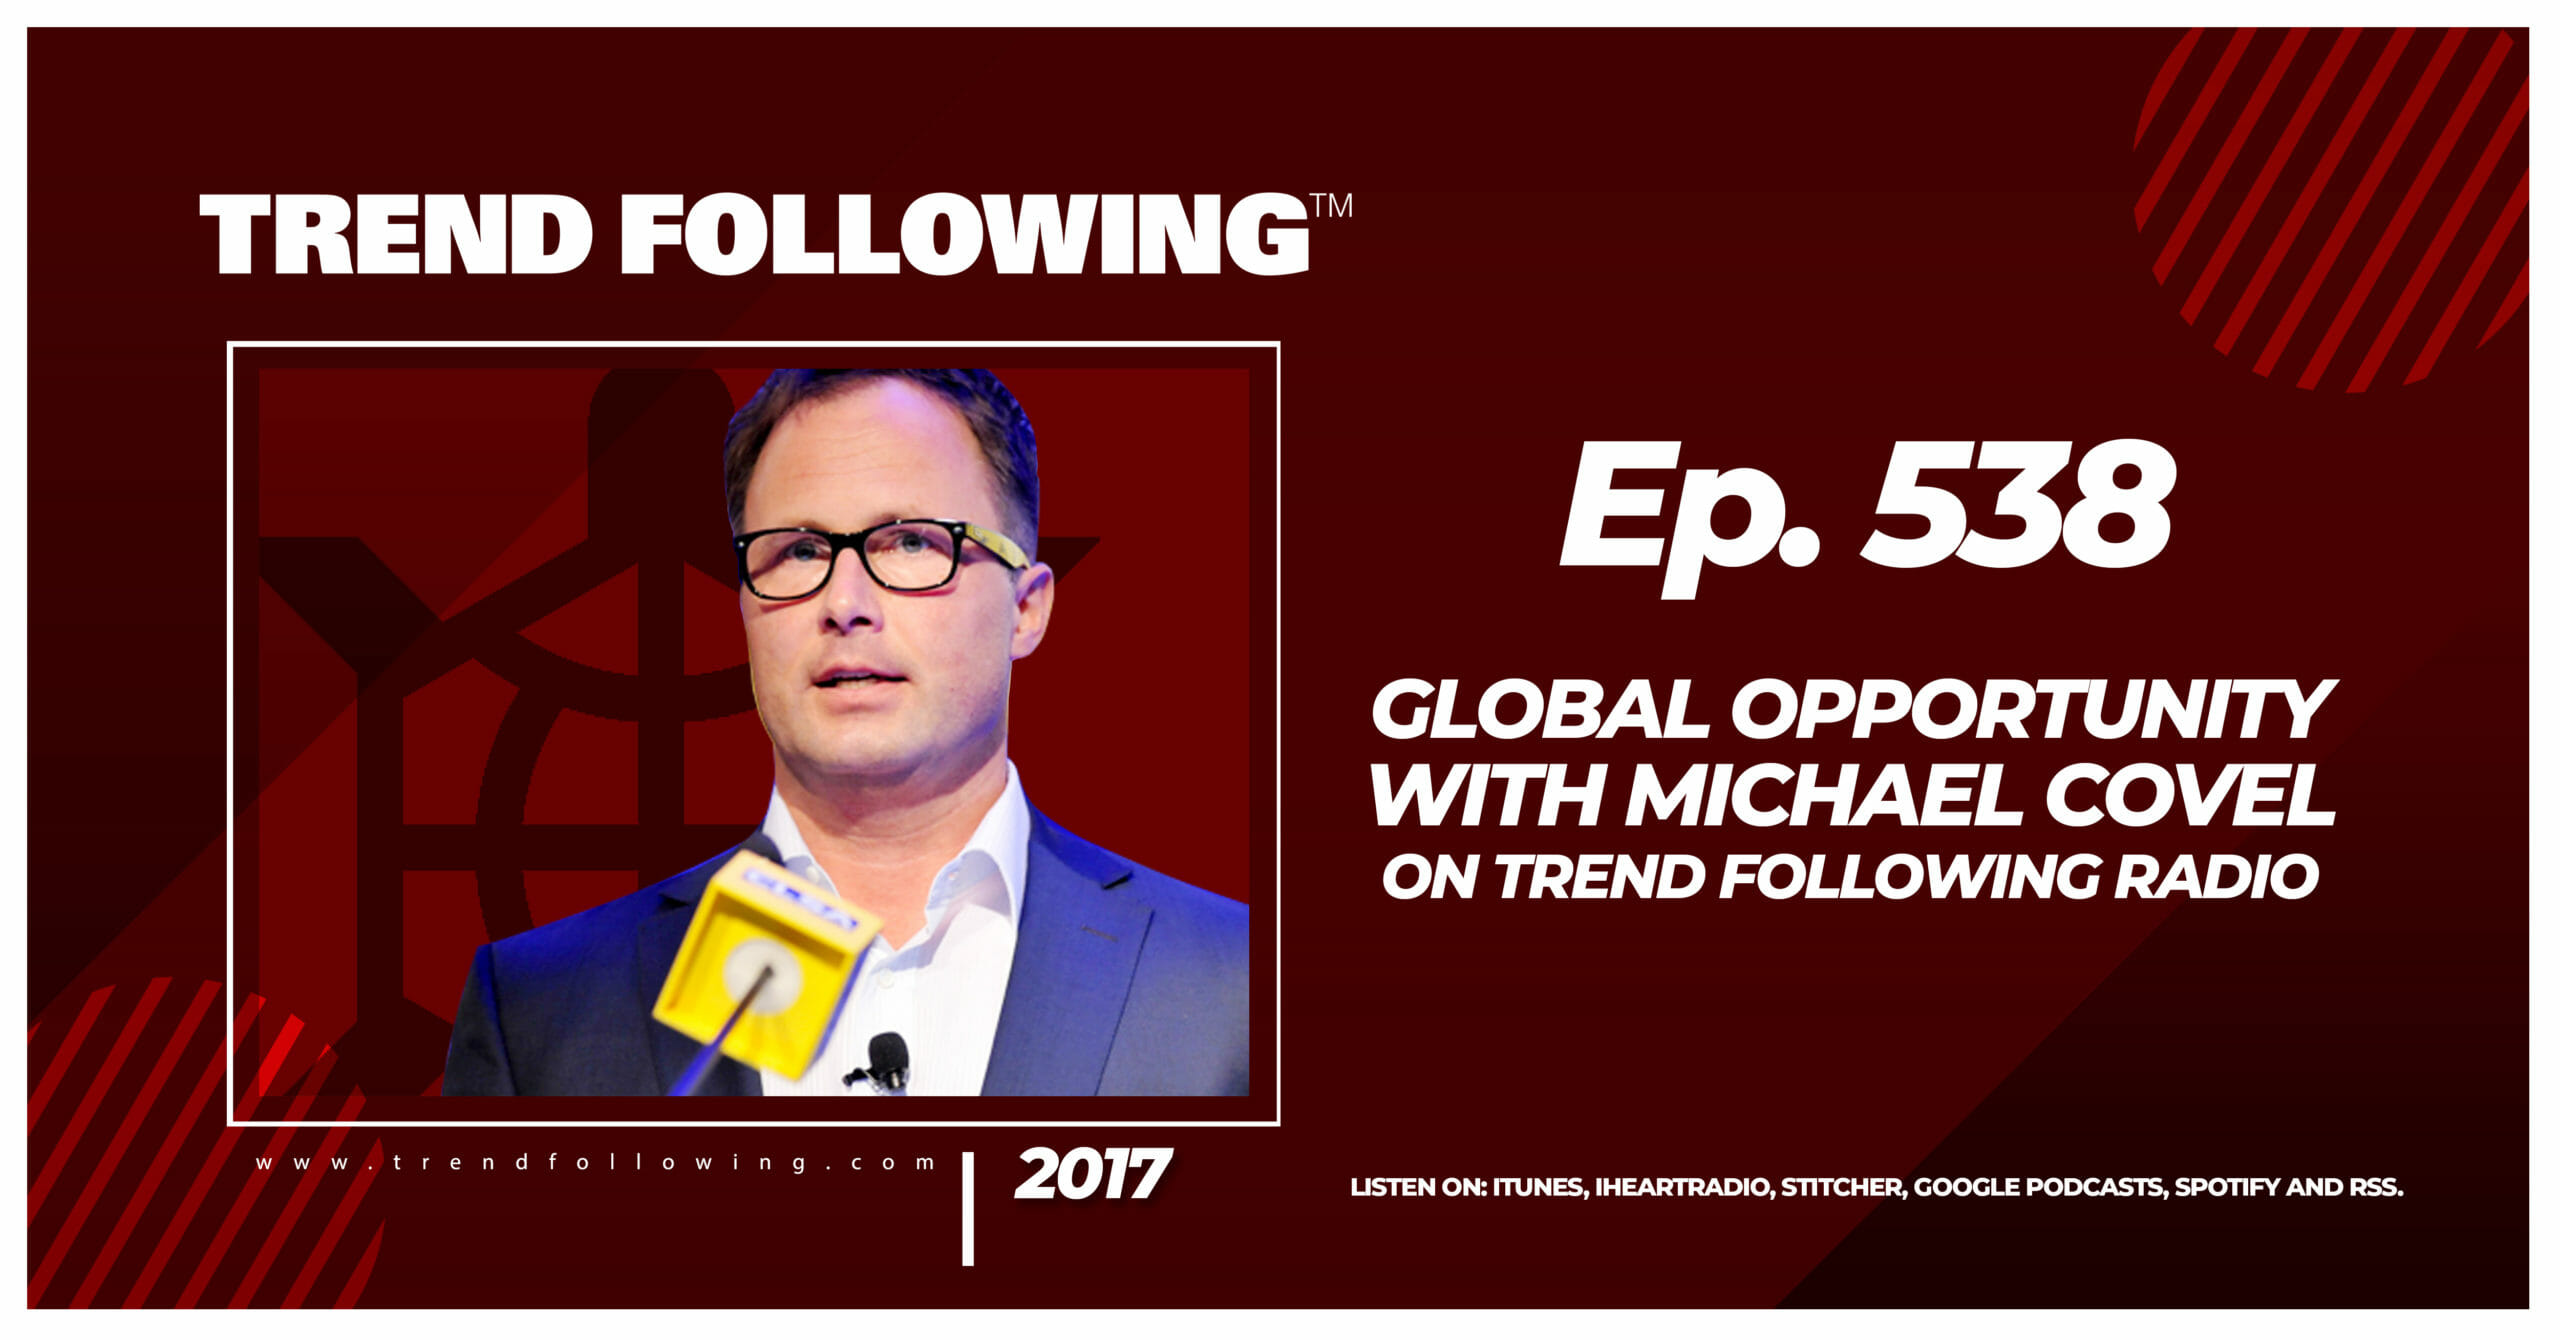 Global Opportunity with Michael Covel on Trend Following Radio